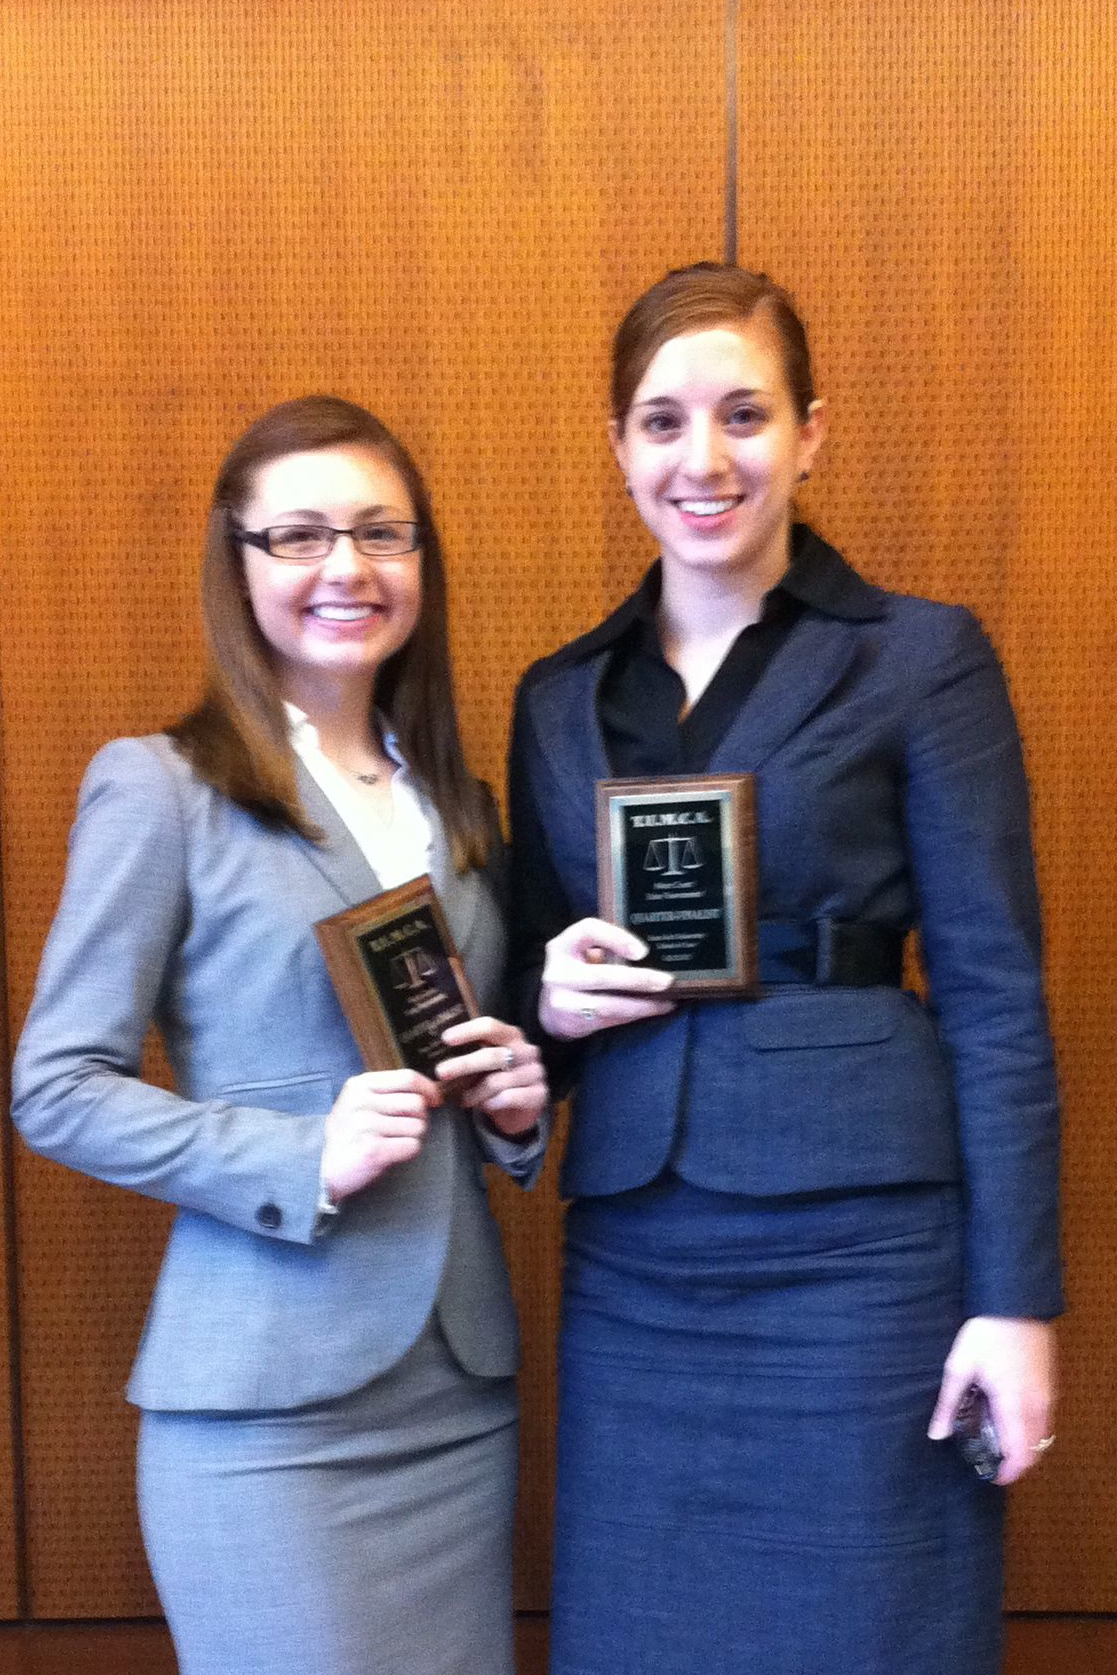 Moot Court_Texas Tech 2010 Rafie and Blurton